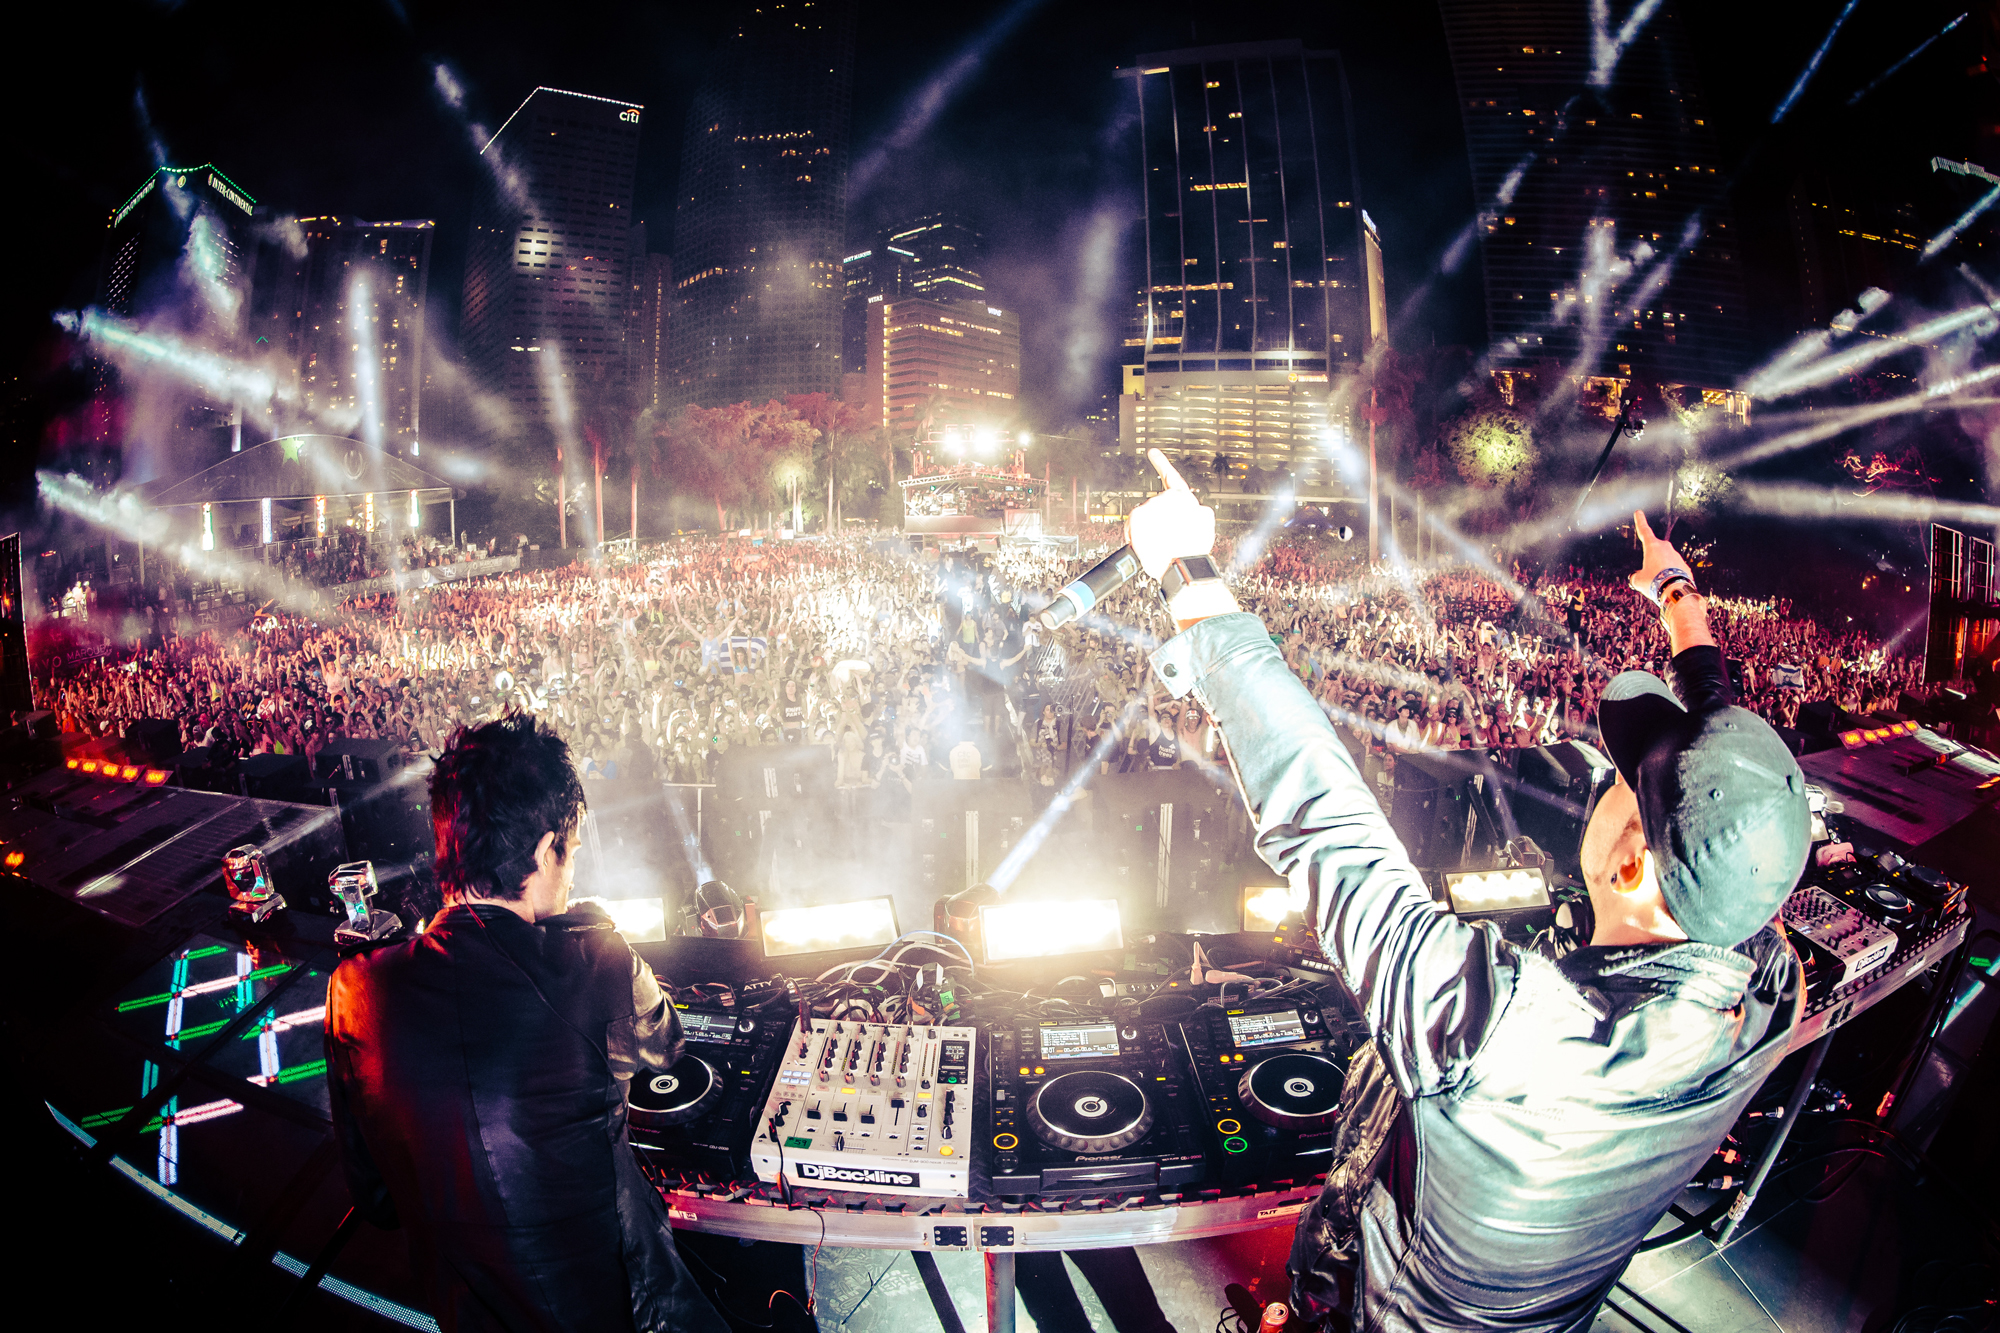 Big Beat Press Knife Party